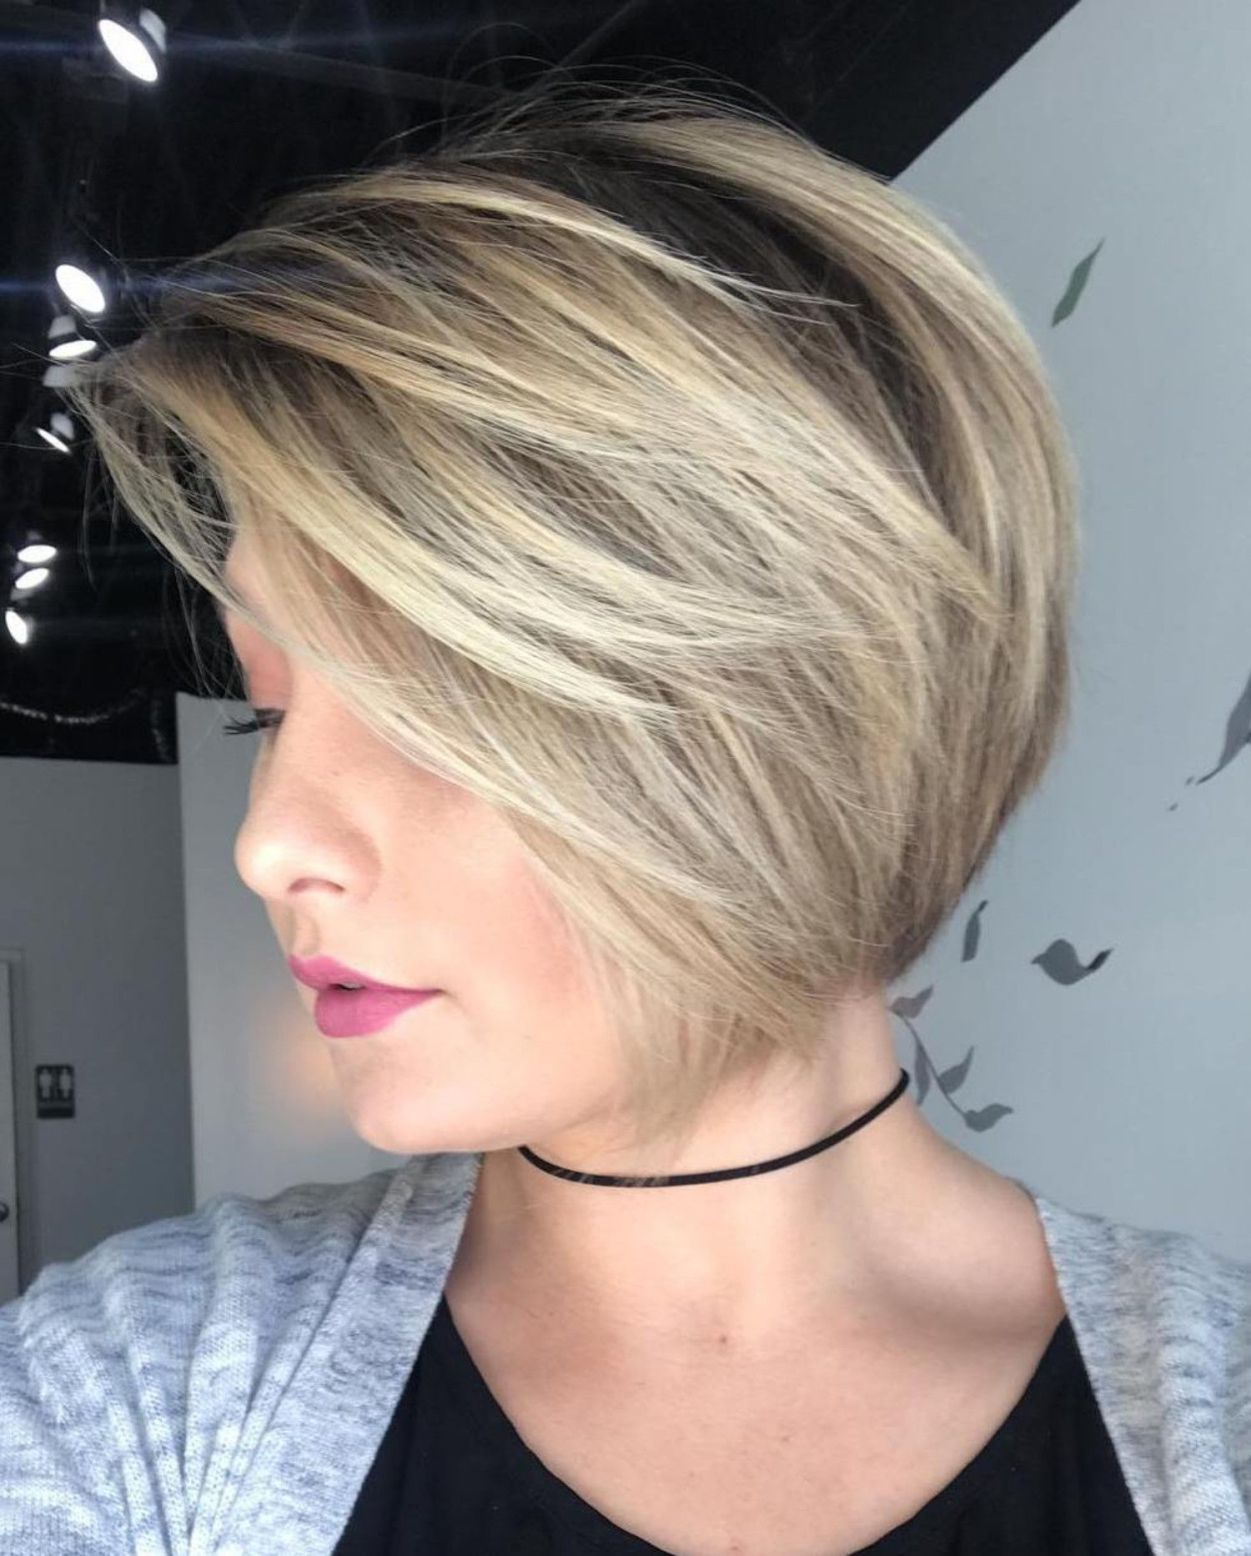 10 Mind-Blowing Short Hairstyles for Fine Hair  Bobs for thin